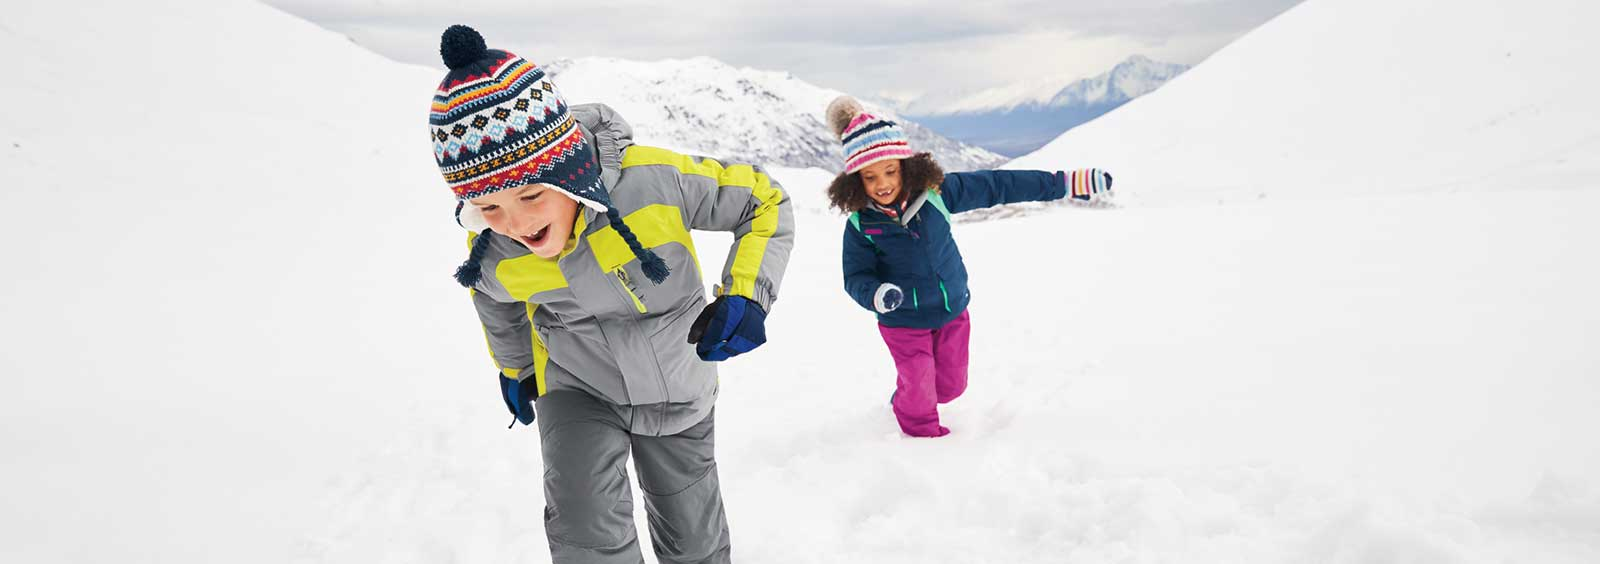 Taking stock in your kids' cold weather gear